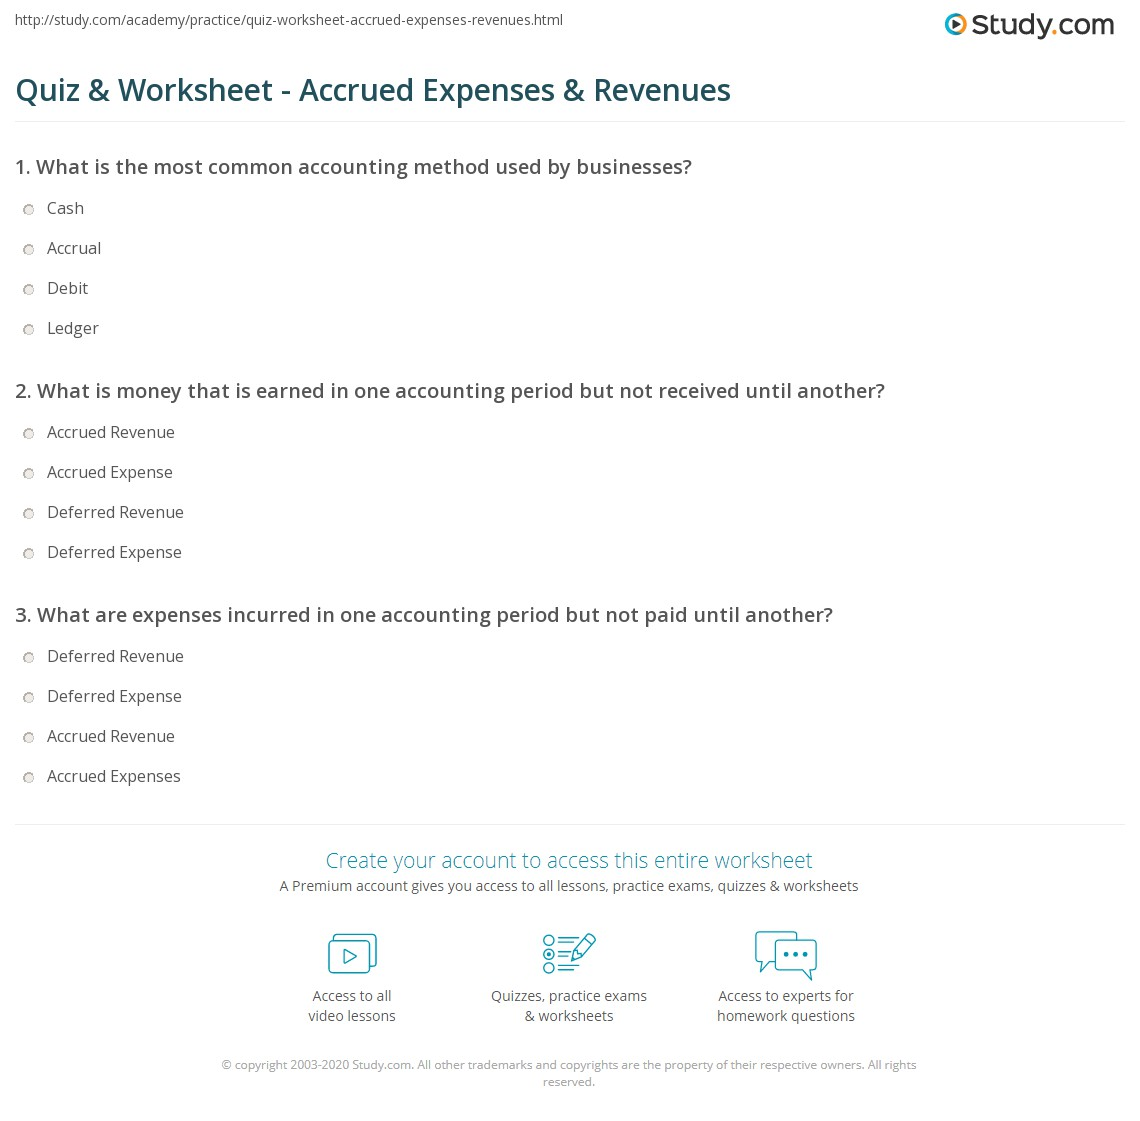 quiz & worksheet - accrued expenses & revenues | study